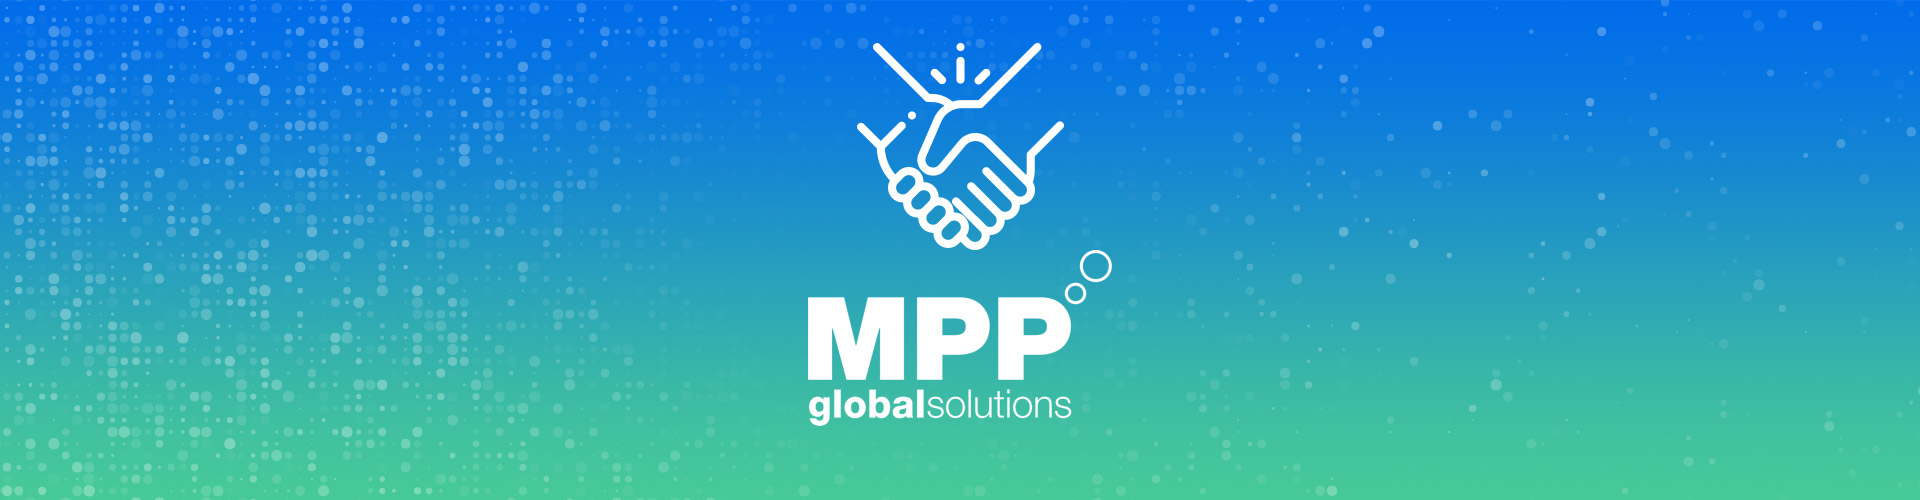 PageSuite & MPP Global Debut Partnership at IFRA World Publishing Expo 18